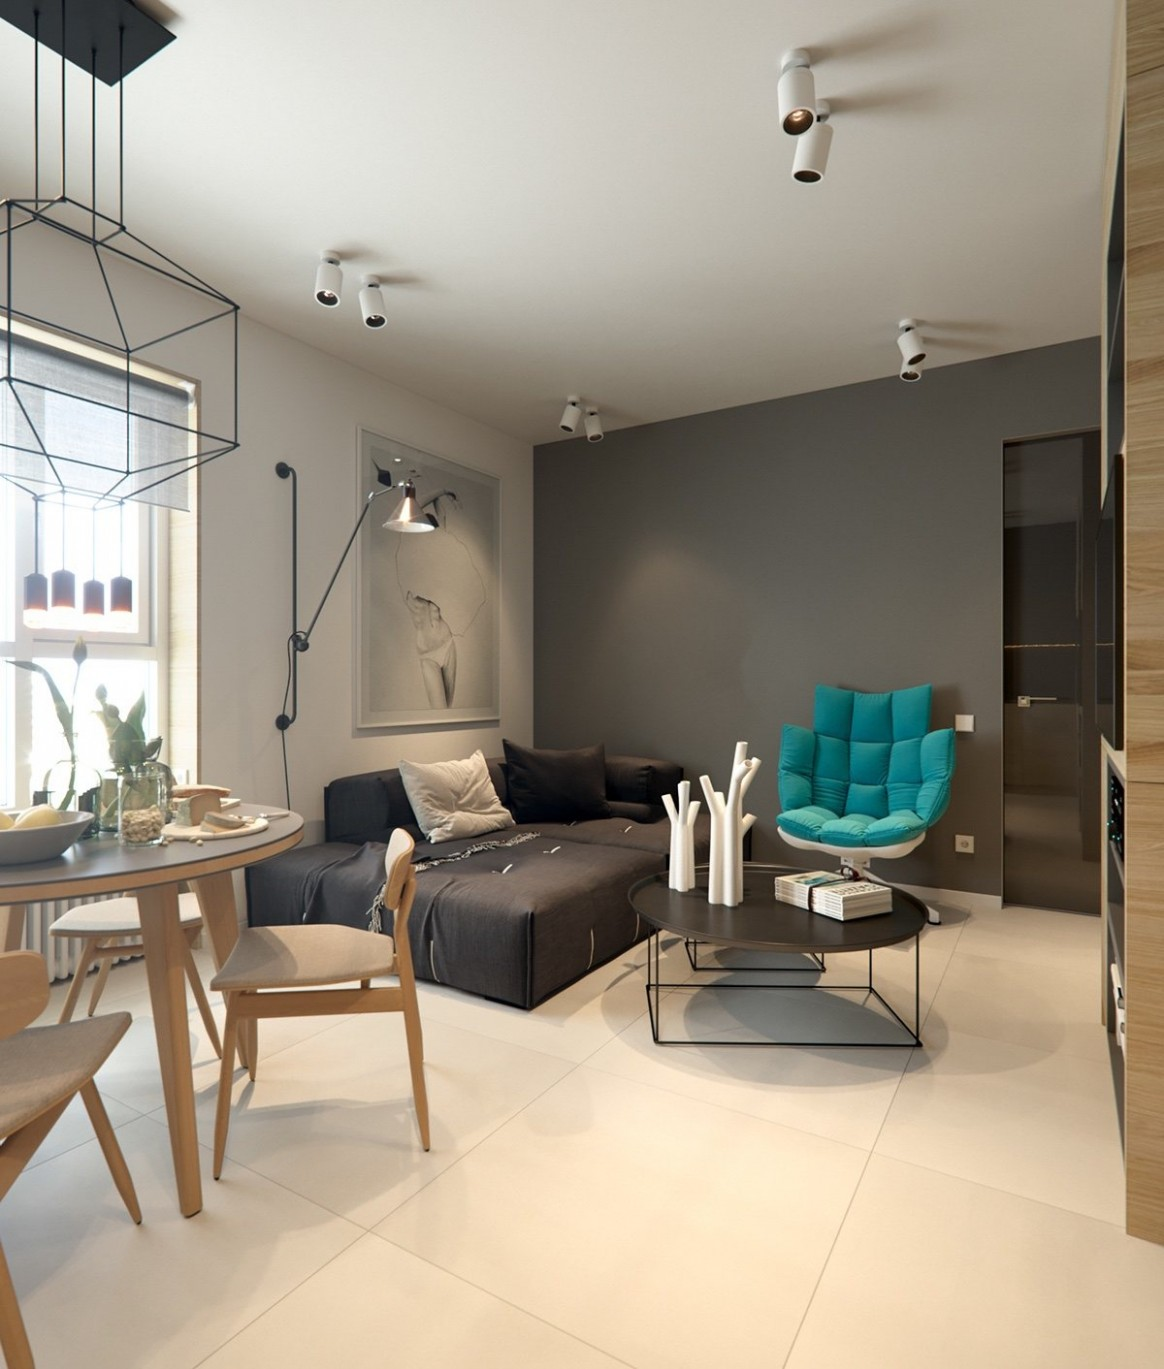 8 Small Apartment Interiors Embracing Character Themes - Apartment Design Themes